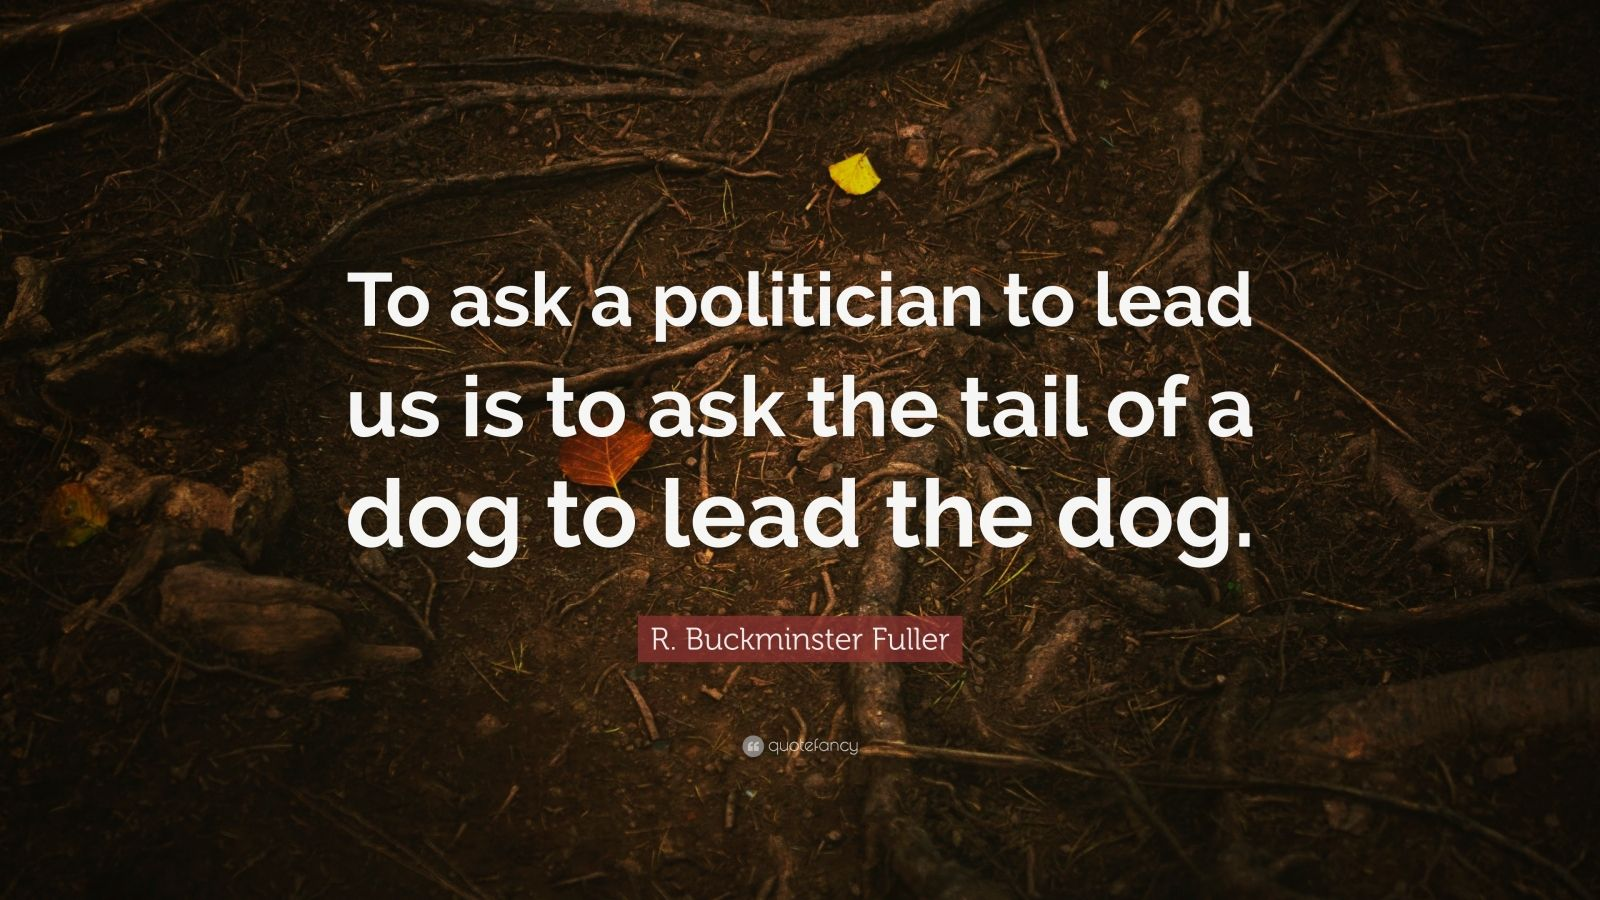 """R. Buckminster Fuller Quote: """"To ask a politician to lead us is to ask the tail of a dog to lead the dog."""""""